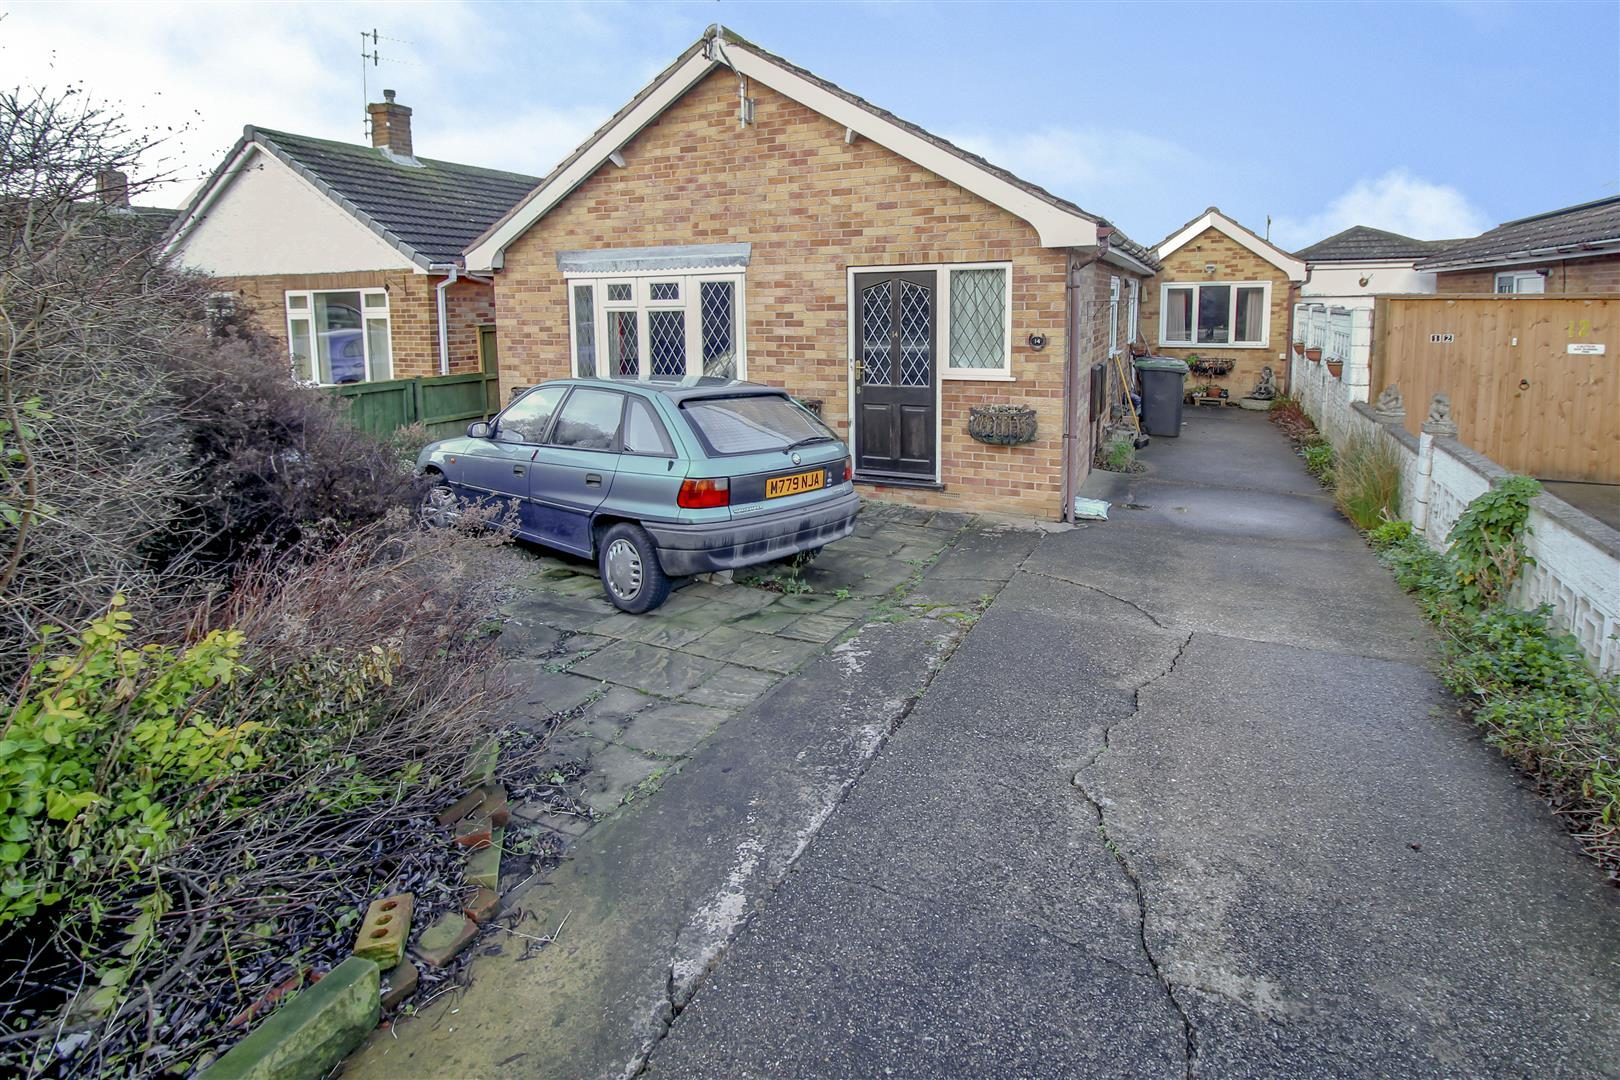 2 Bedrooms Detached Bungalow for sale in Canalside, Beeston